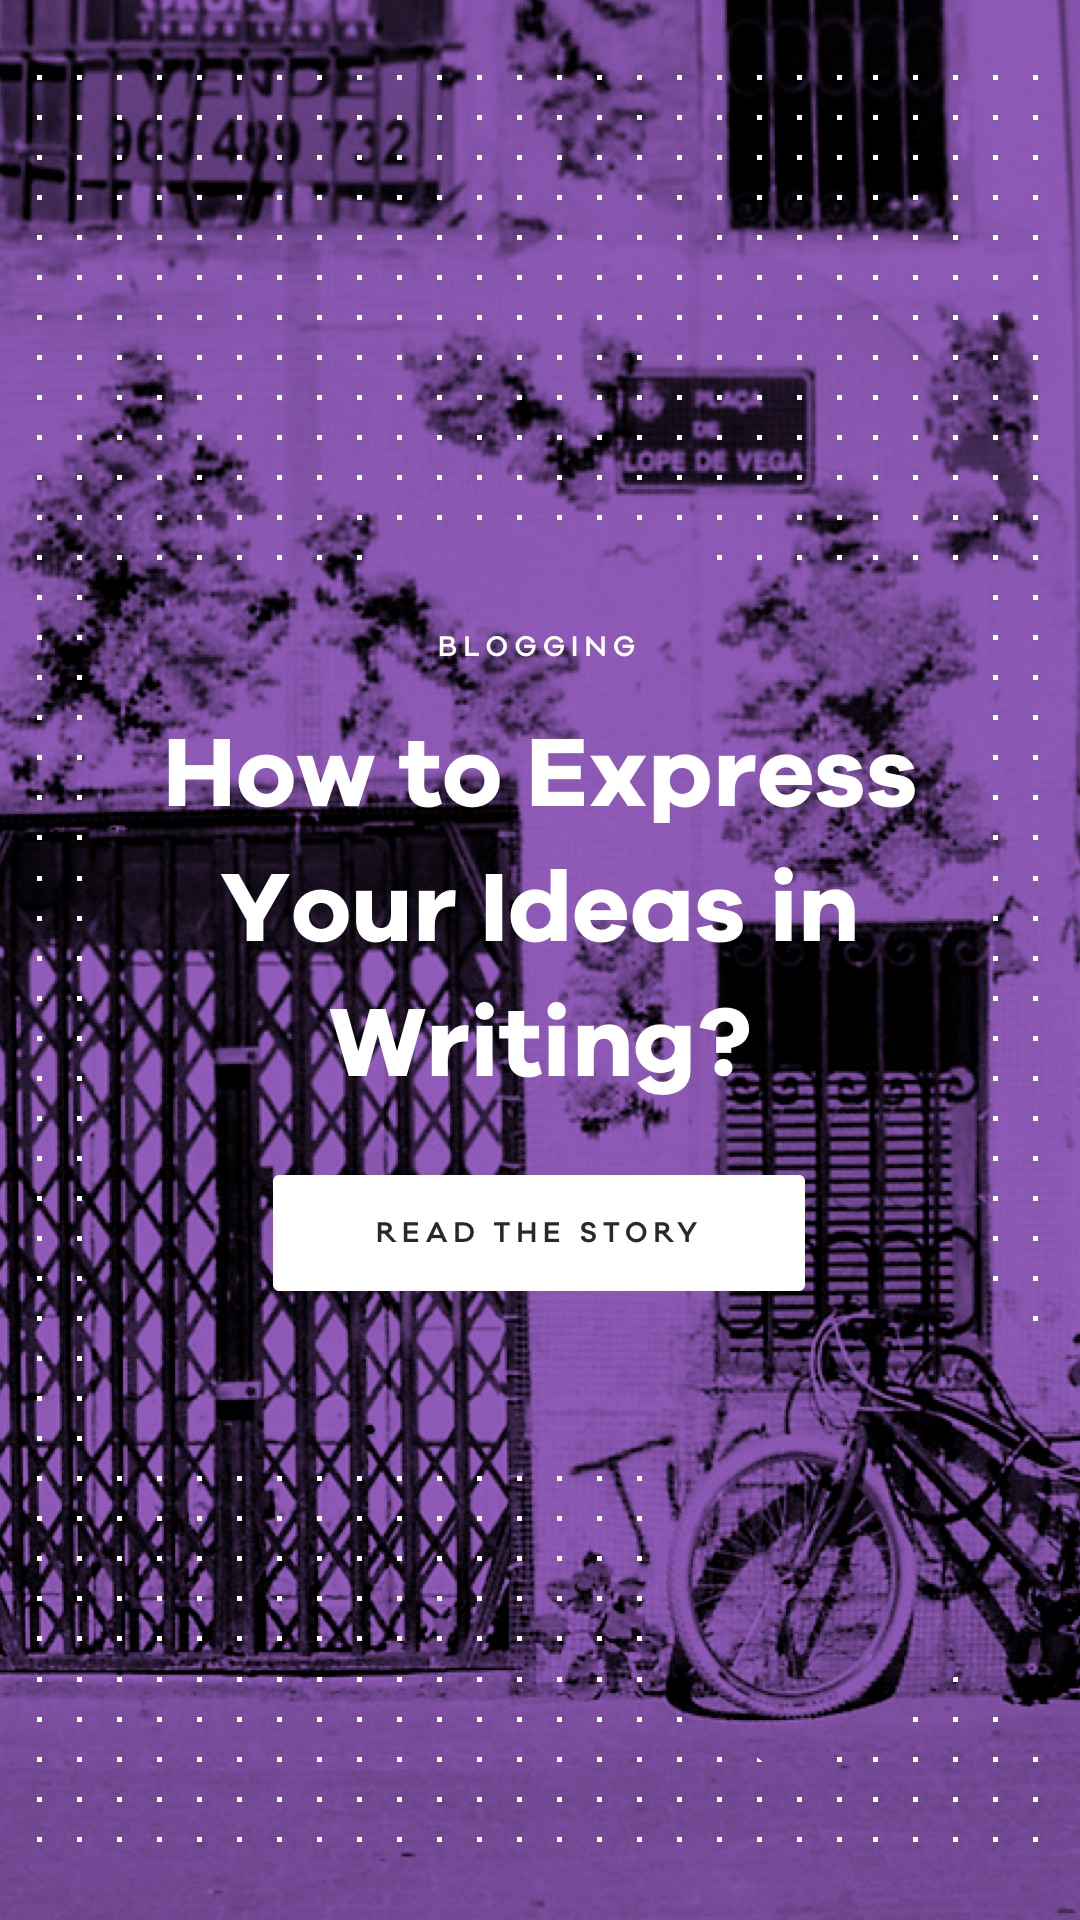 Learn how to express your ideas in writing without losing your personality.